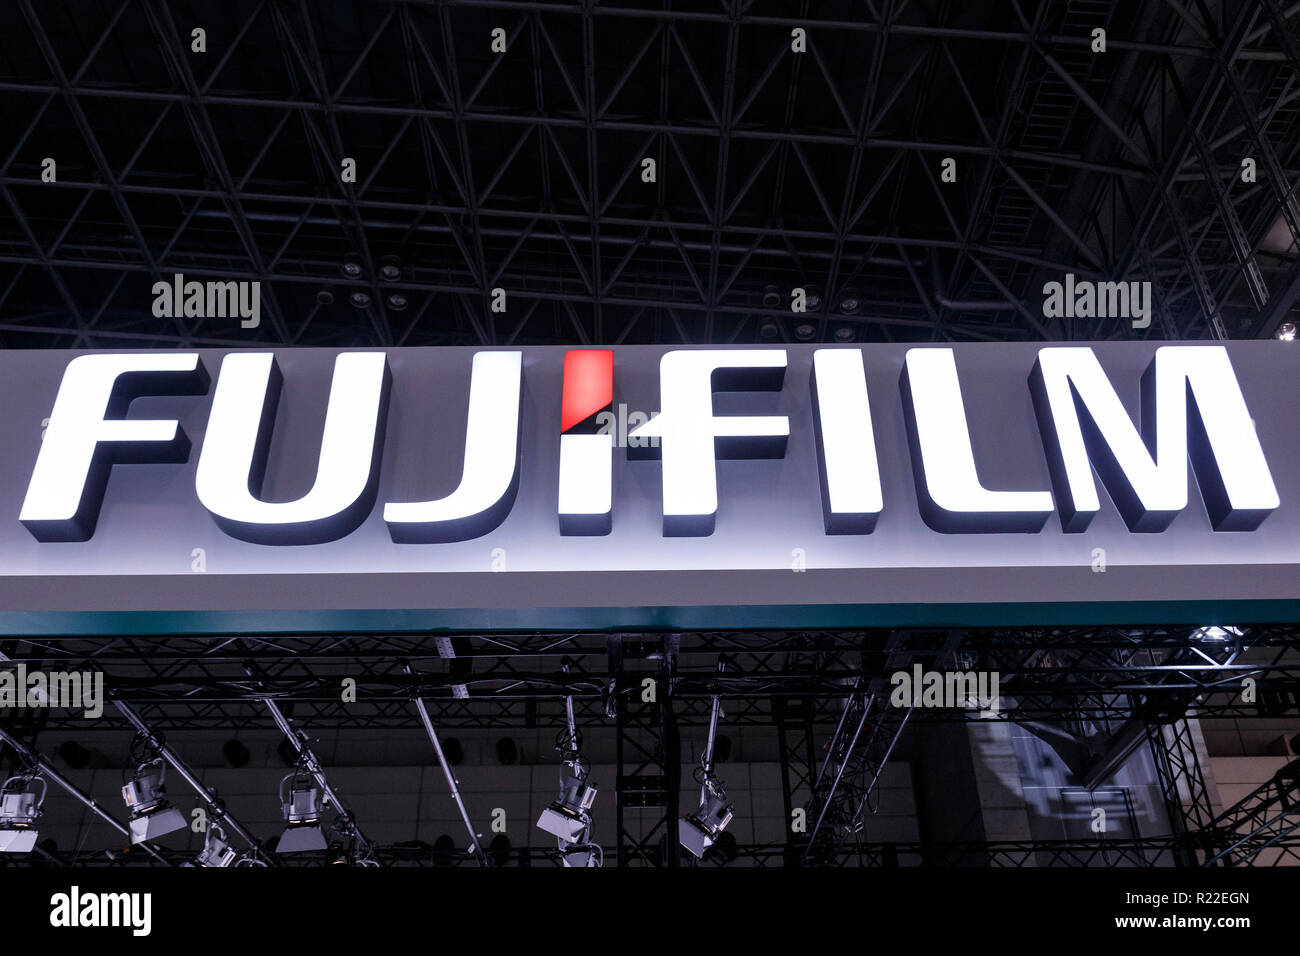 Tokyo, Japan. 15th November, 2018. A FUJIFILM logo on display during the International Broadcast Equipment Exhibition (Inter BEE) 2018 at the International Convention Complex Makuhari Messe in Chiba. The exhibition shows the latest technologies for audio, video and communications in Japan and overseas including 16K displays and new camera equipment. Inter BEE is held from November 14 to 16. Credit: Rodrigo Reyes/Alamy Live News - Stock Image